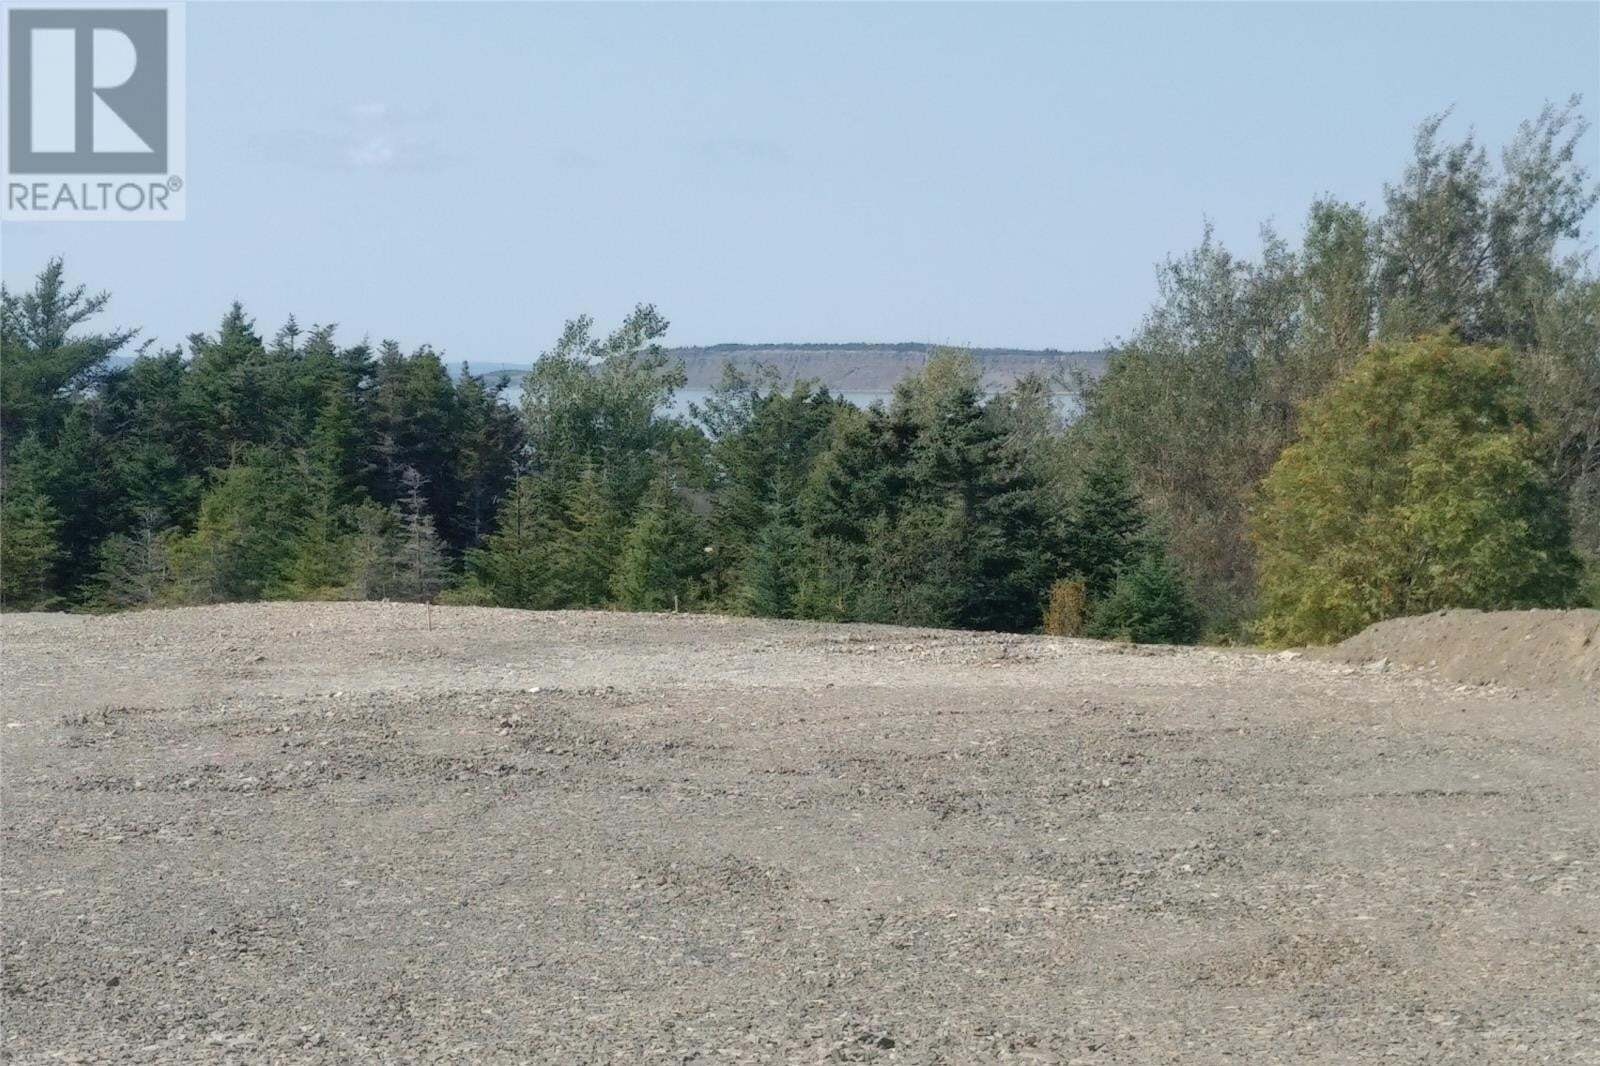 Residential property for sale at 23 Atkins Rd Conception Bay South Newfoundland - MLS: 1221101